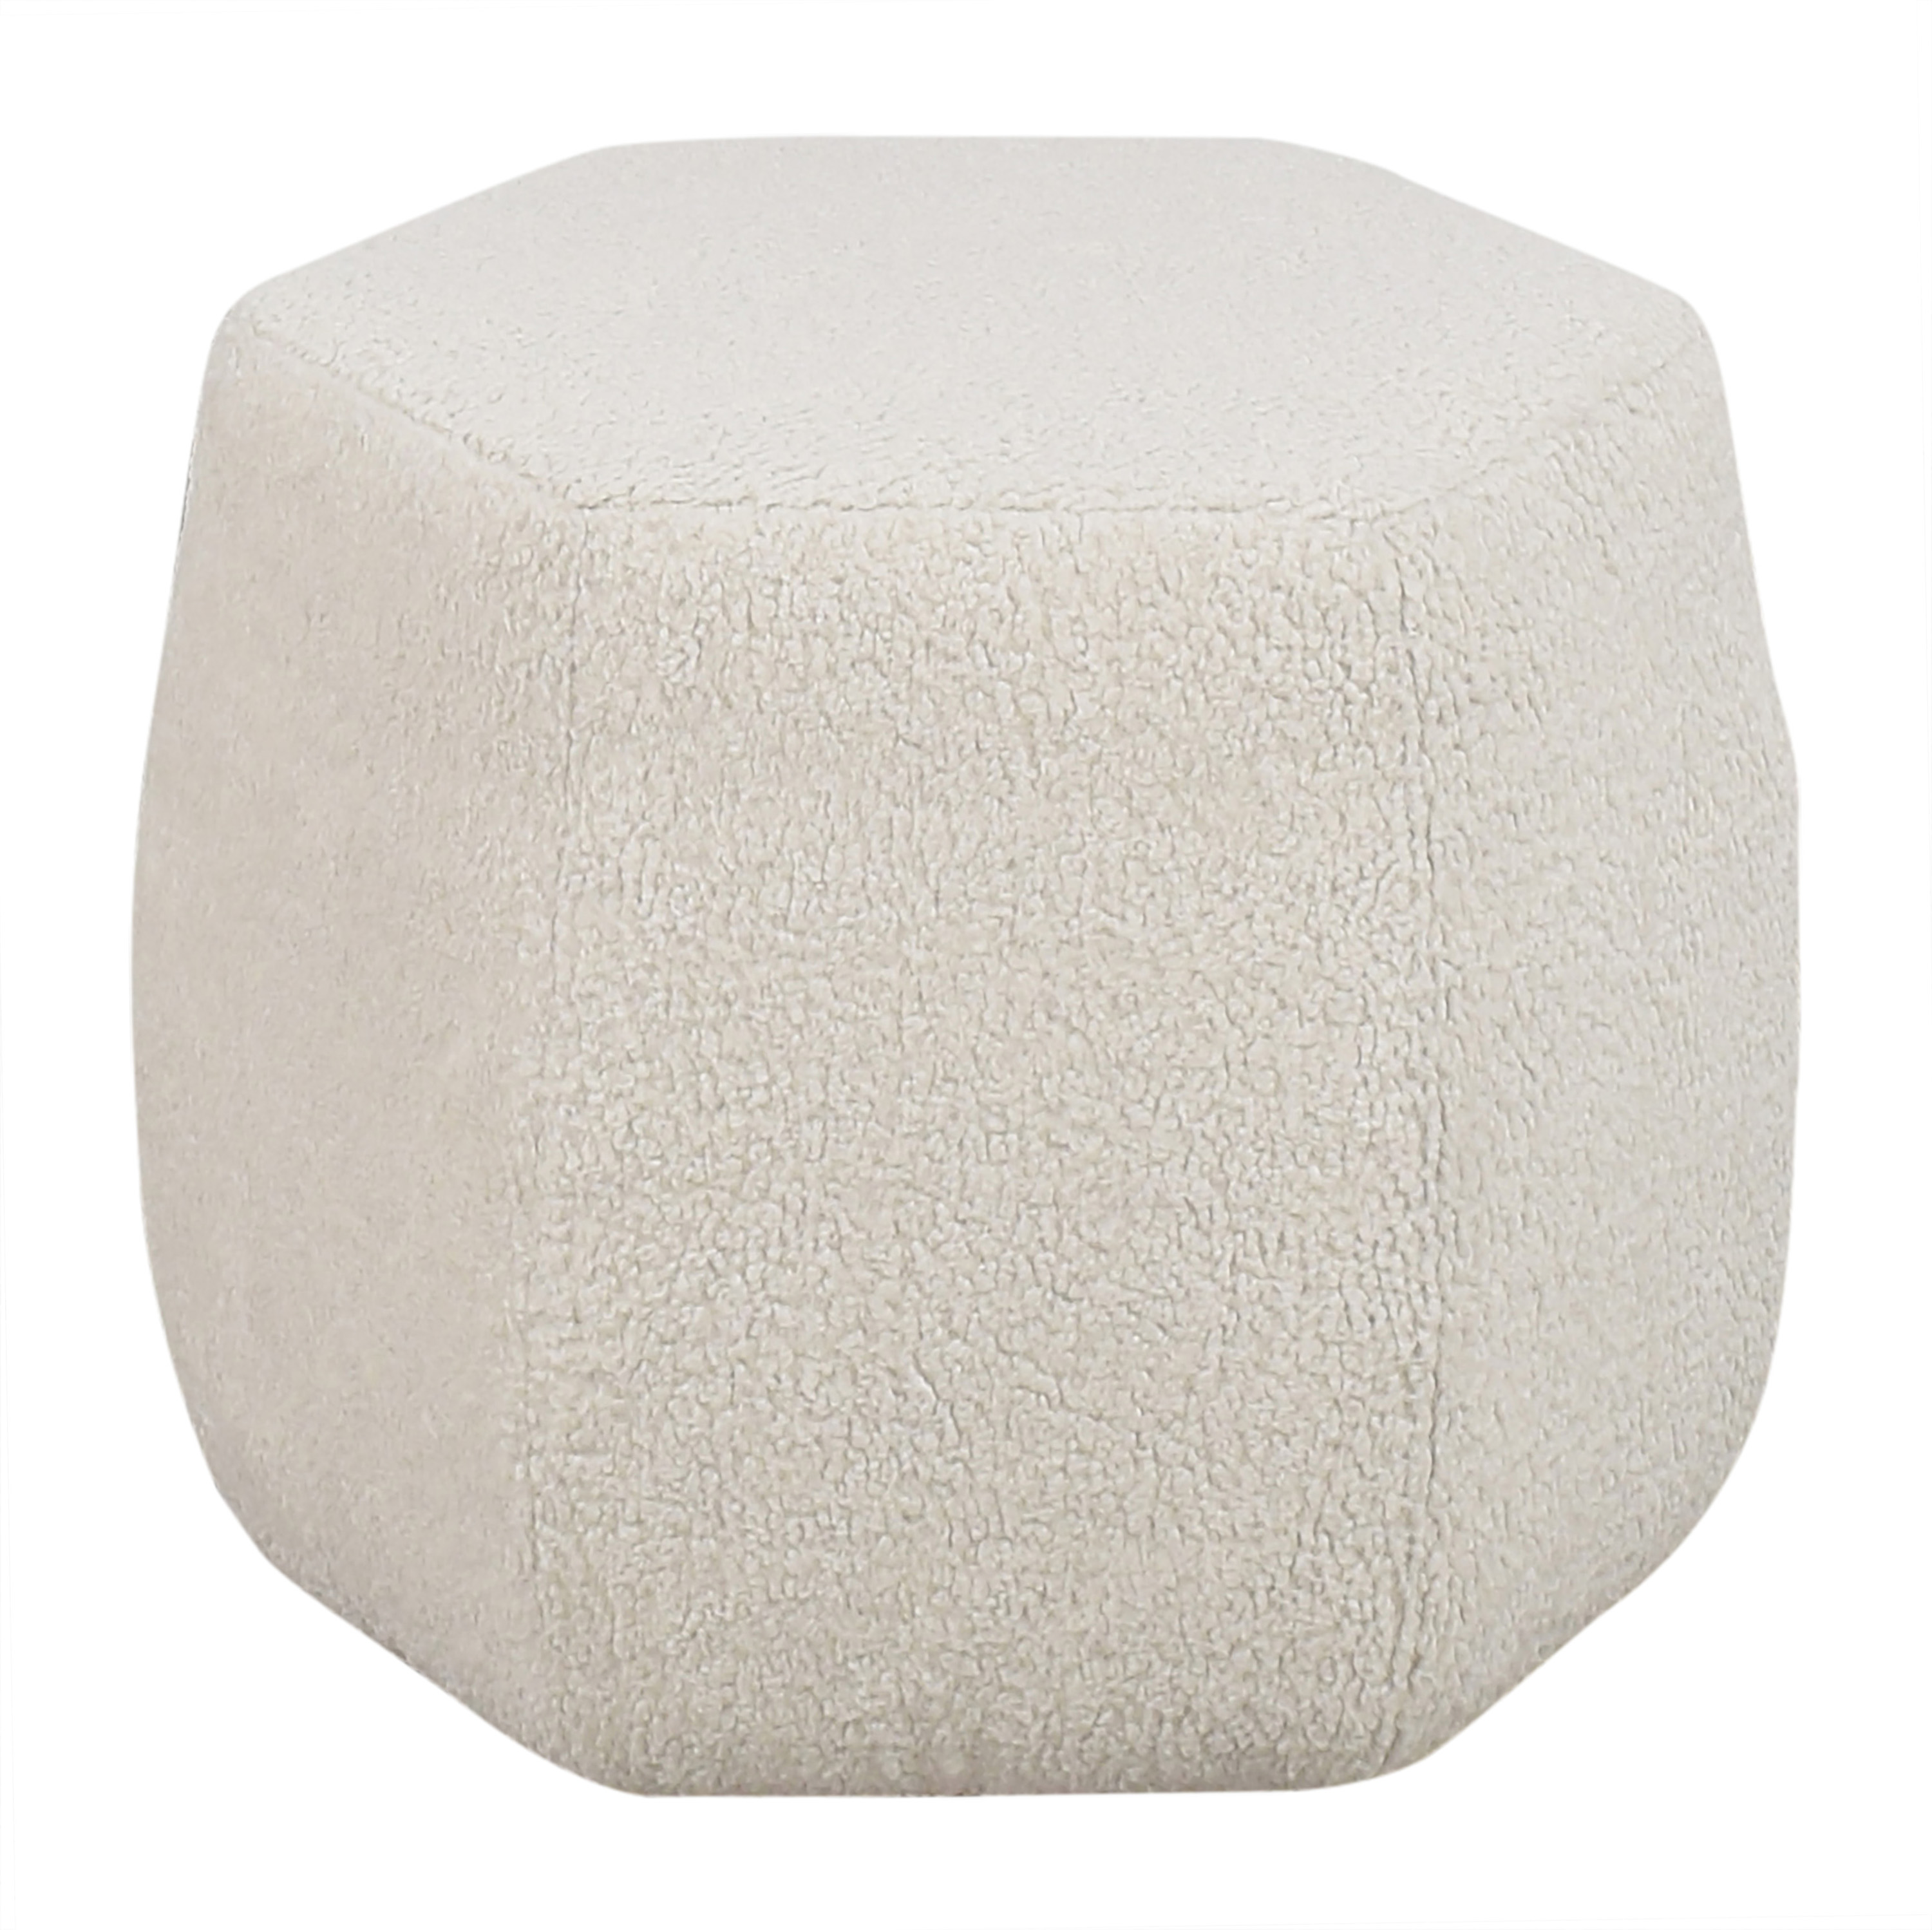 ABC Carpet & Home ABC Carpet & Home Joe's Hex Ottoman off white